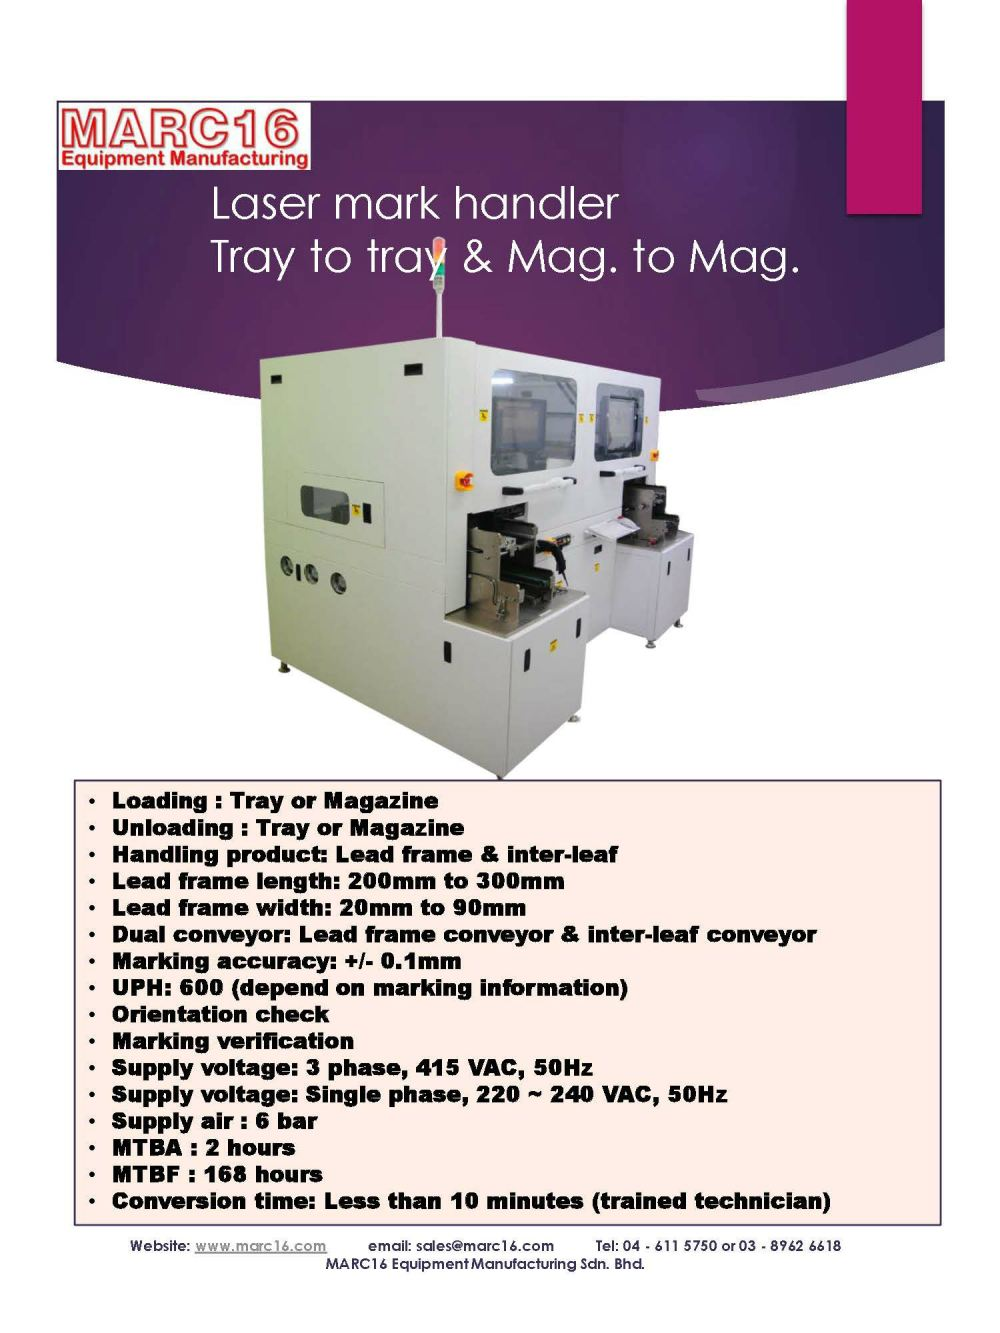 Laser mark handler - Leadframe - Conveyor type (Mag. to Mag.)